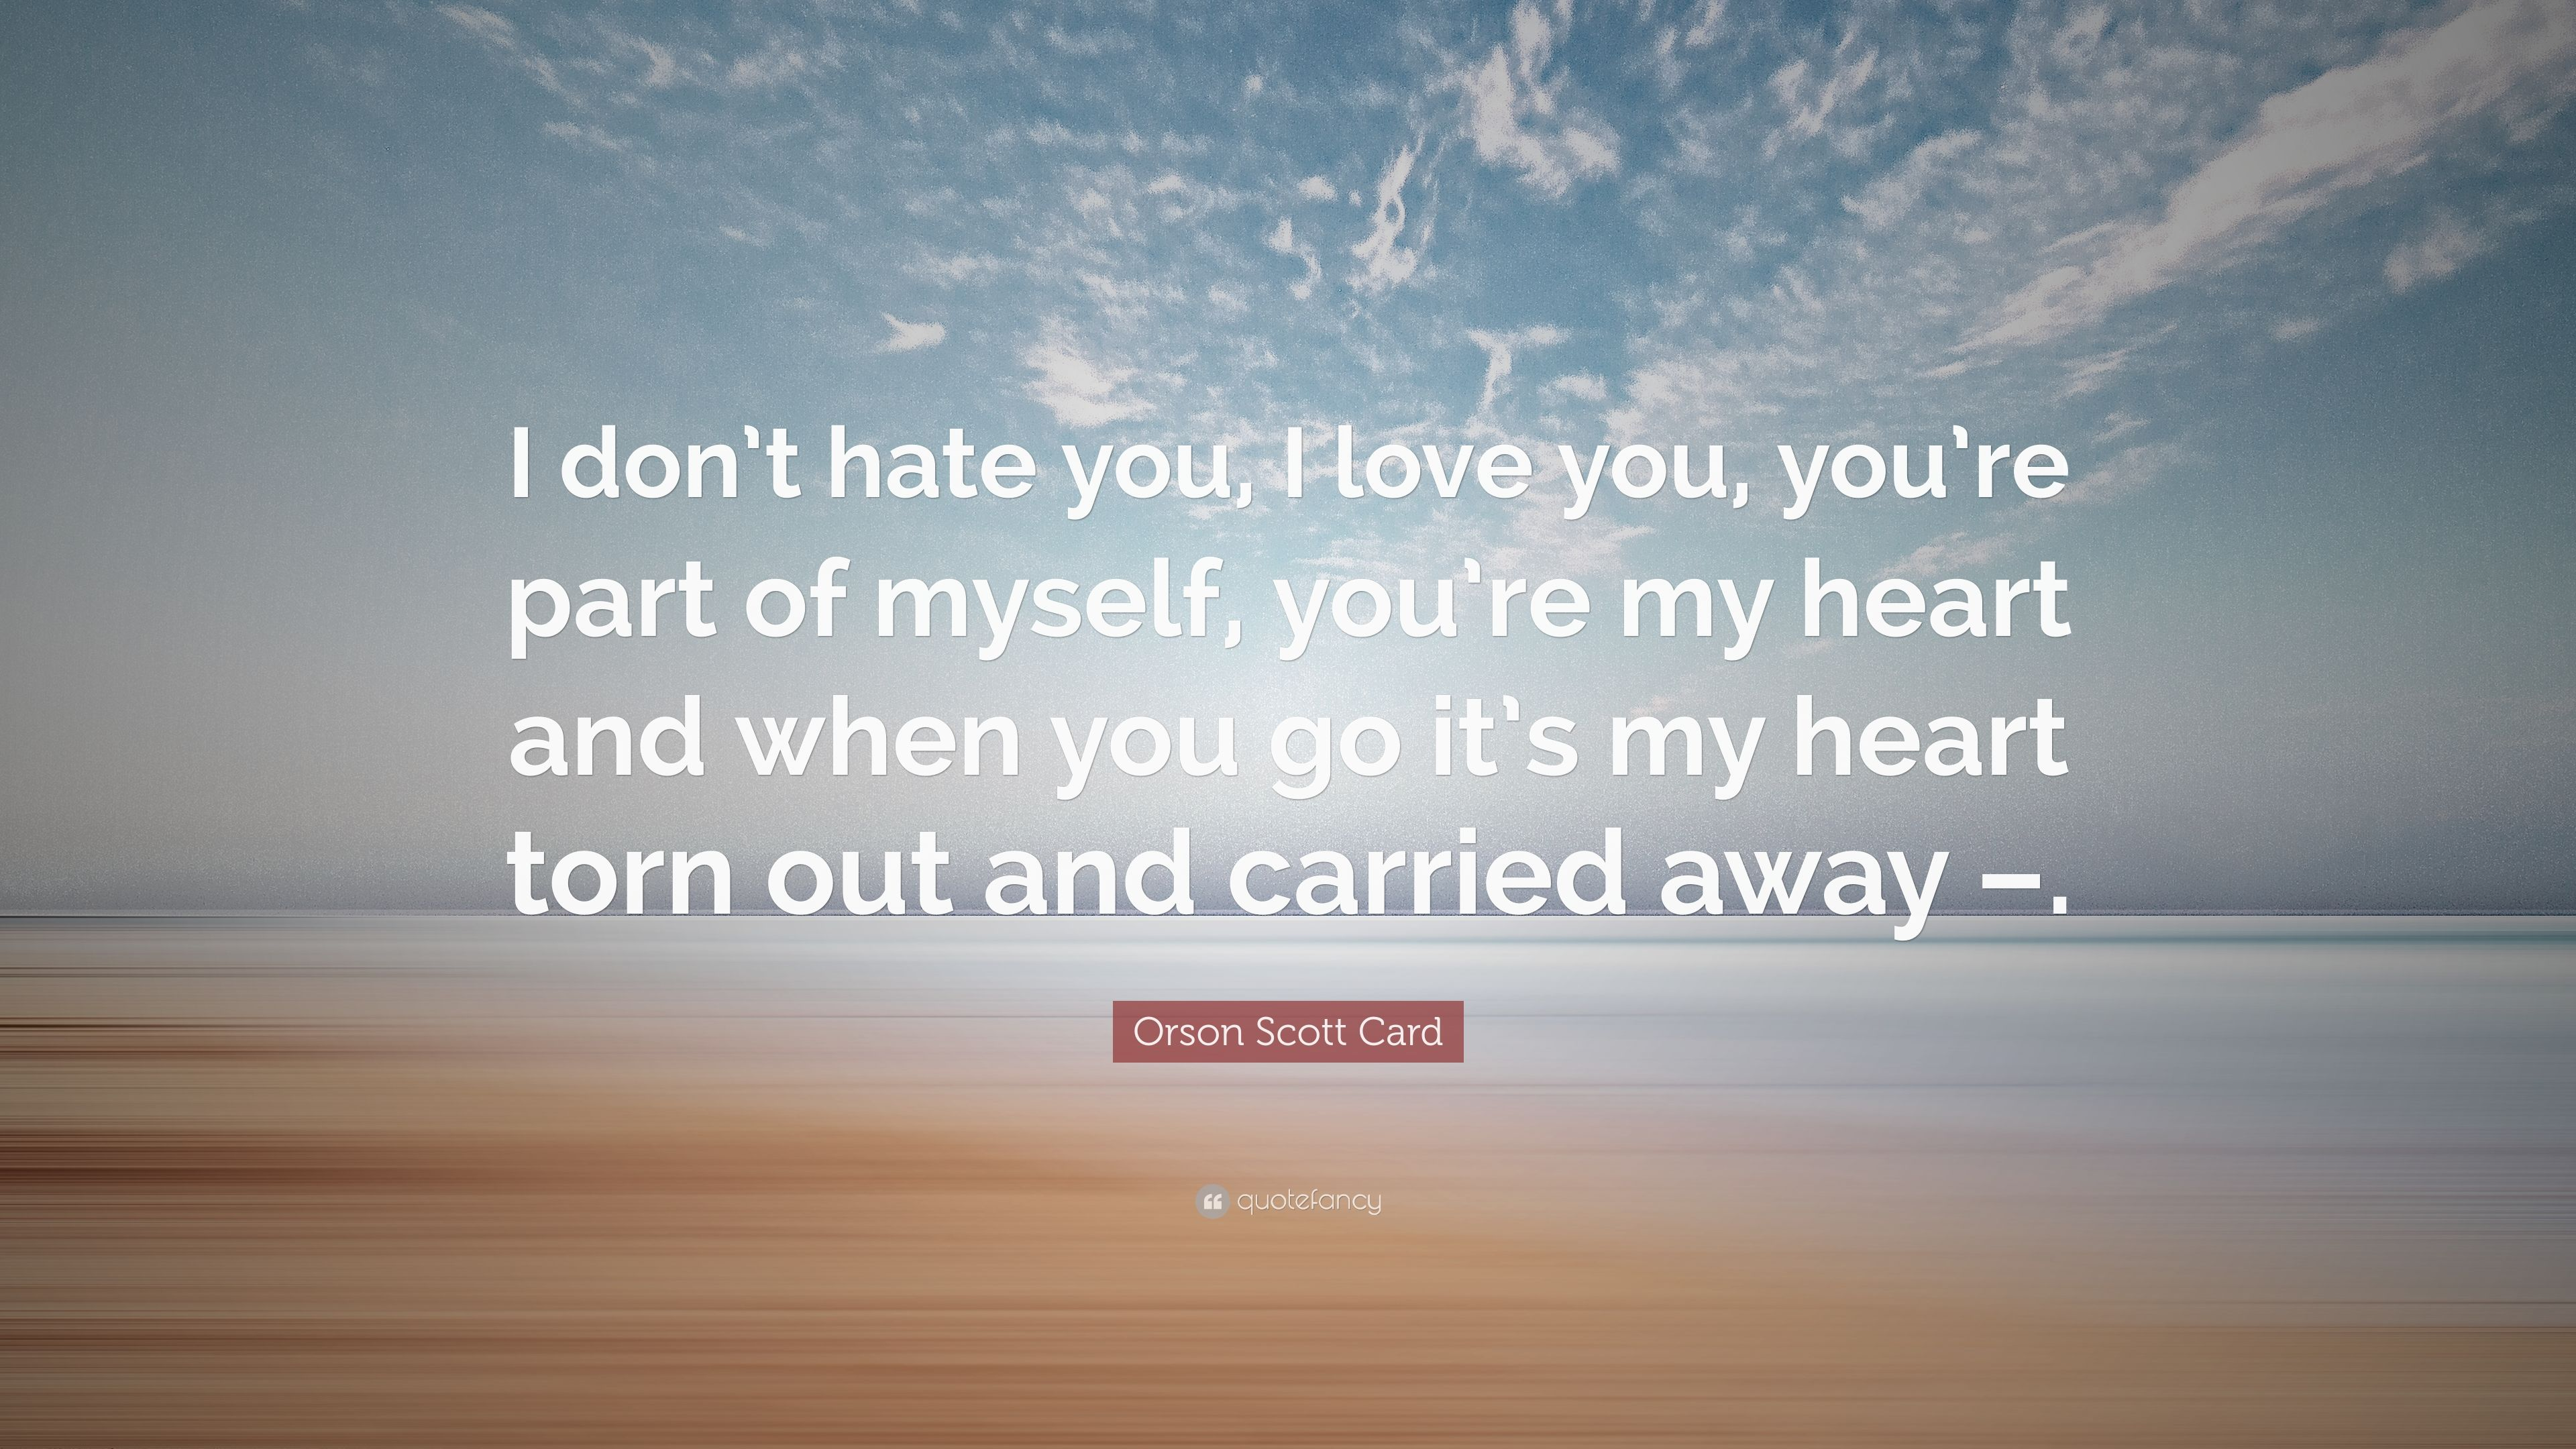 Orson Scott Card Quote: U201cI Donu0027t Hate You, I Love You